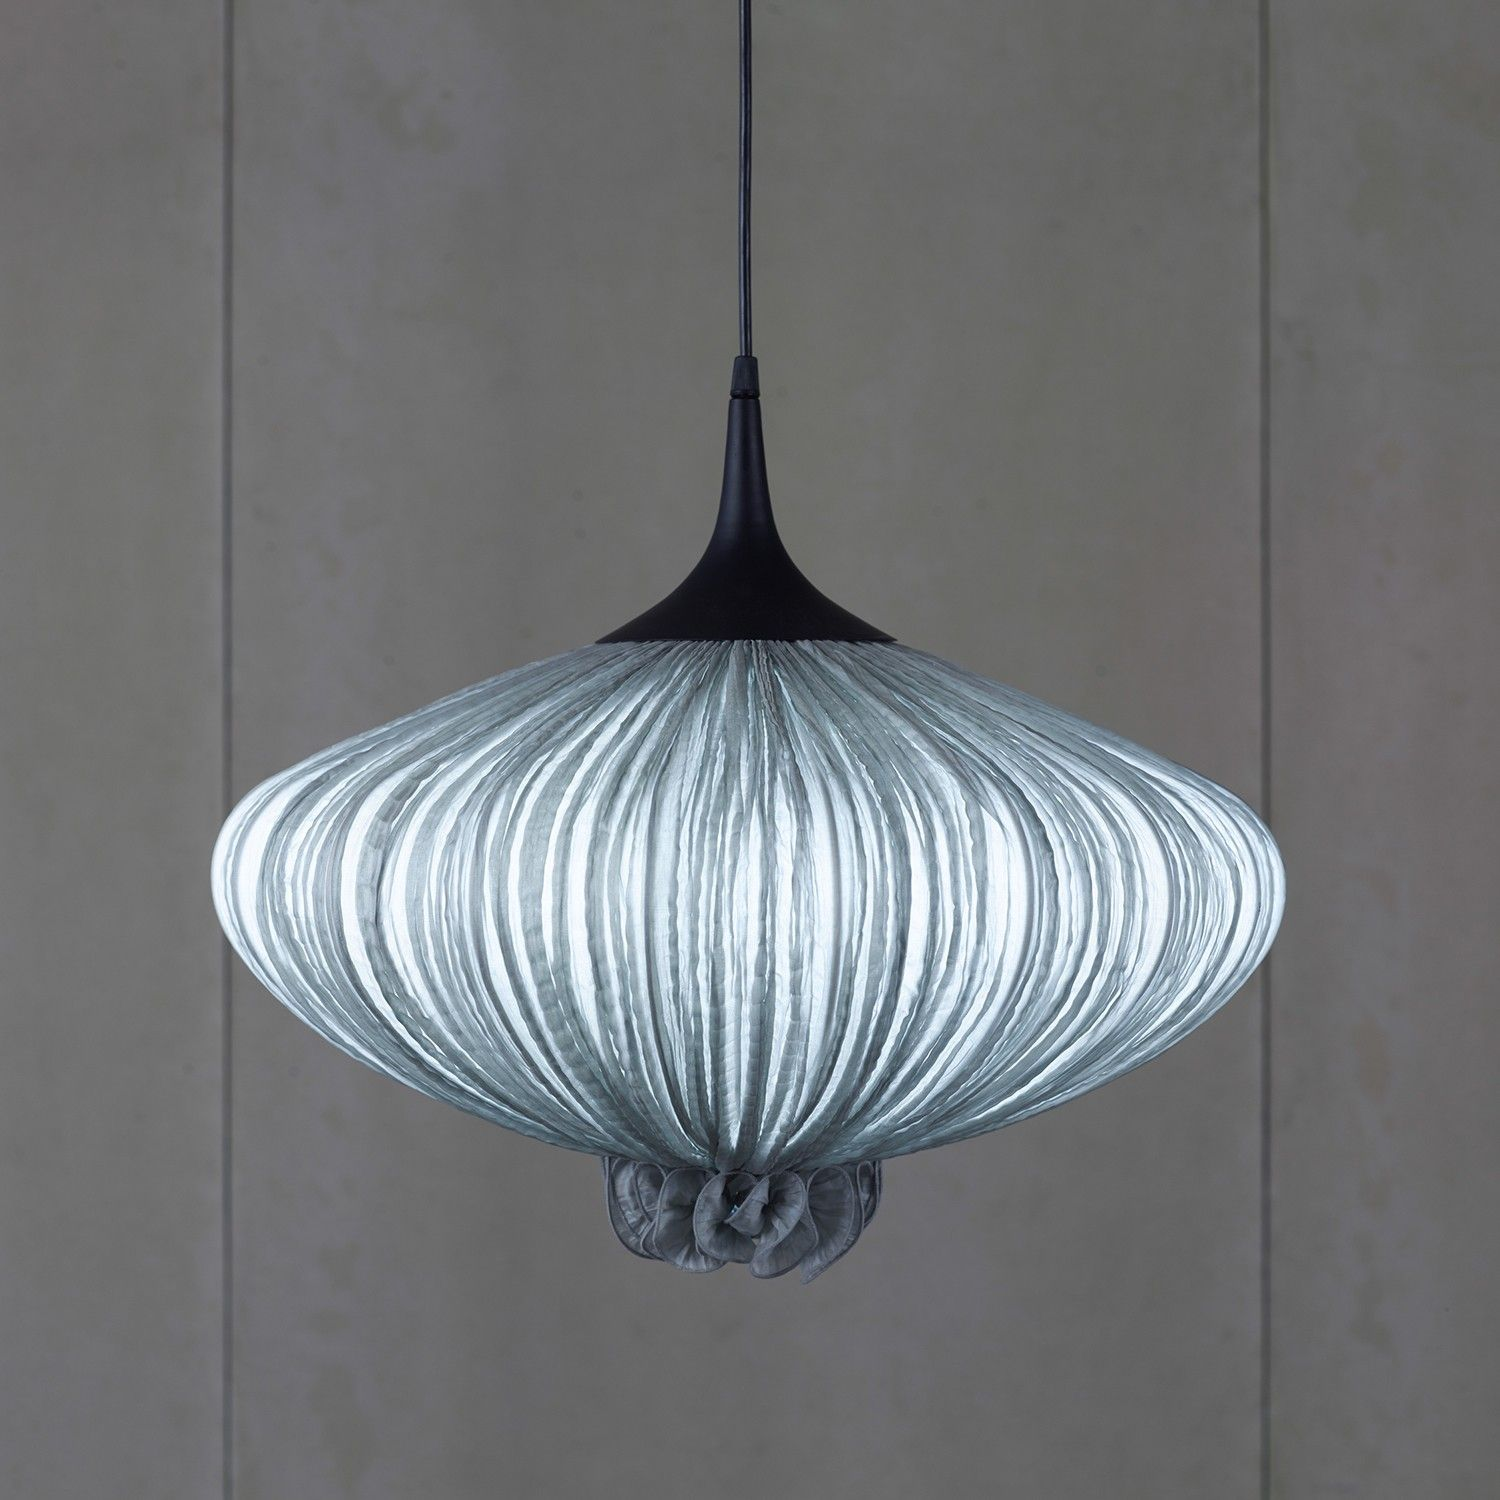 The Suuria Pendant Light was designed in 1997 and is a member of the Morning Glory collection.